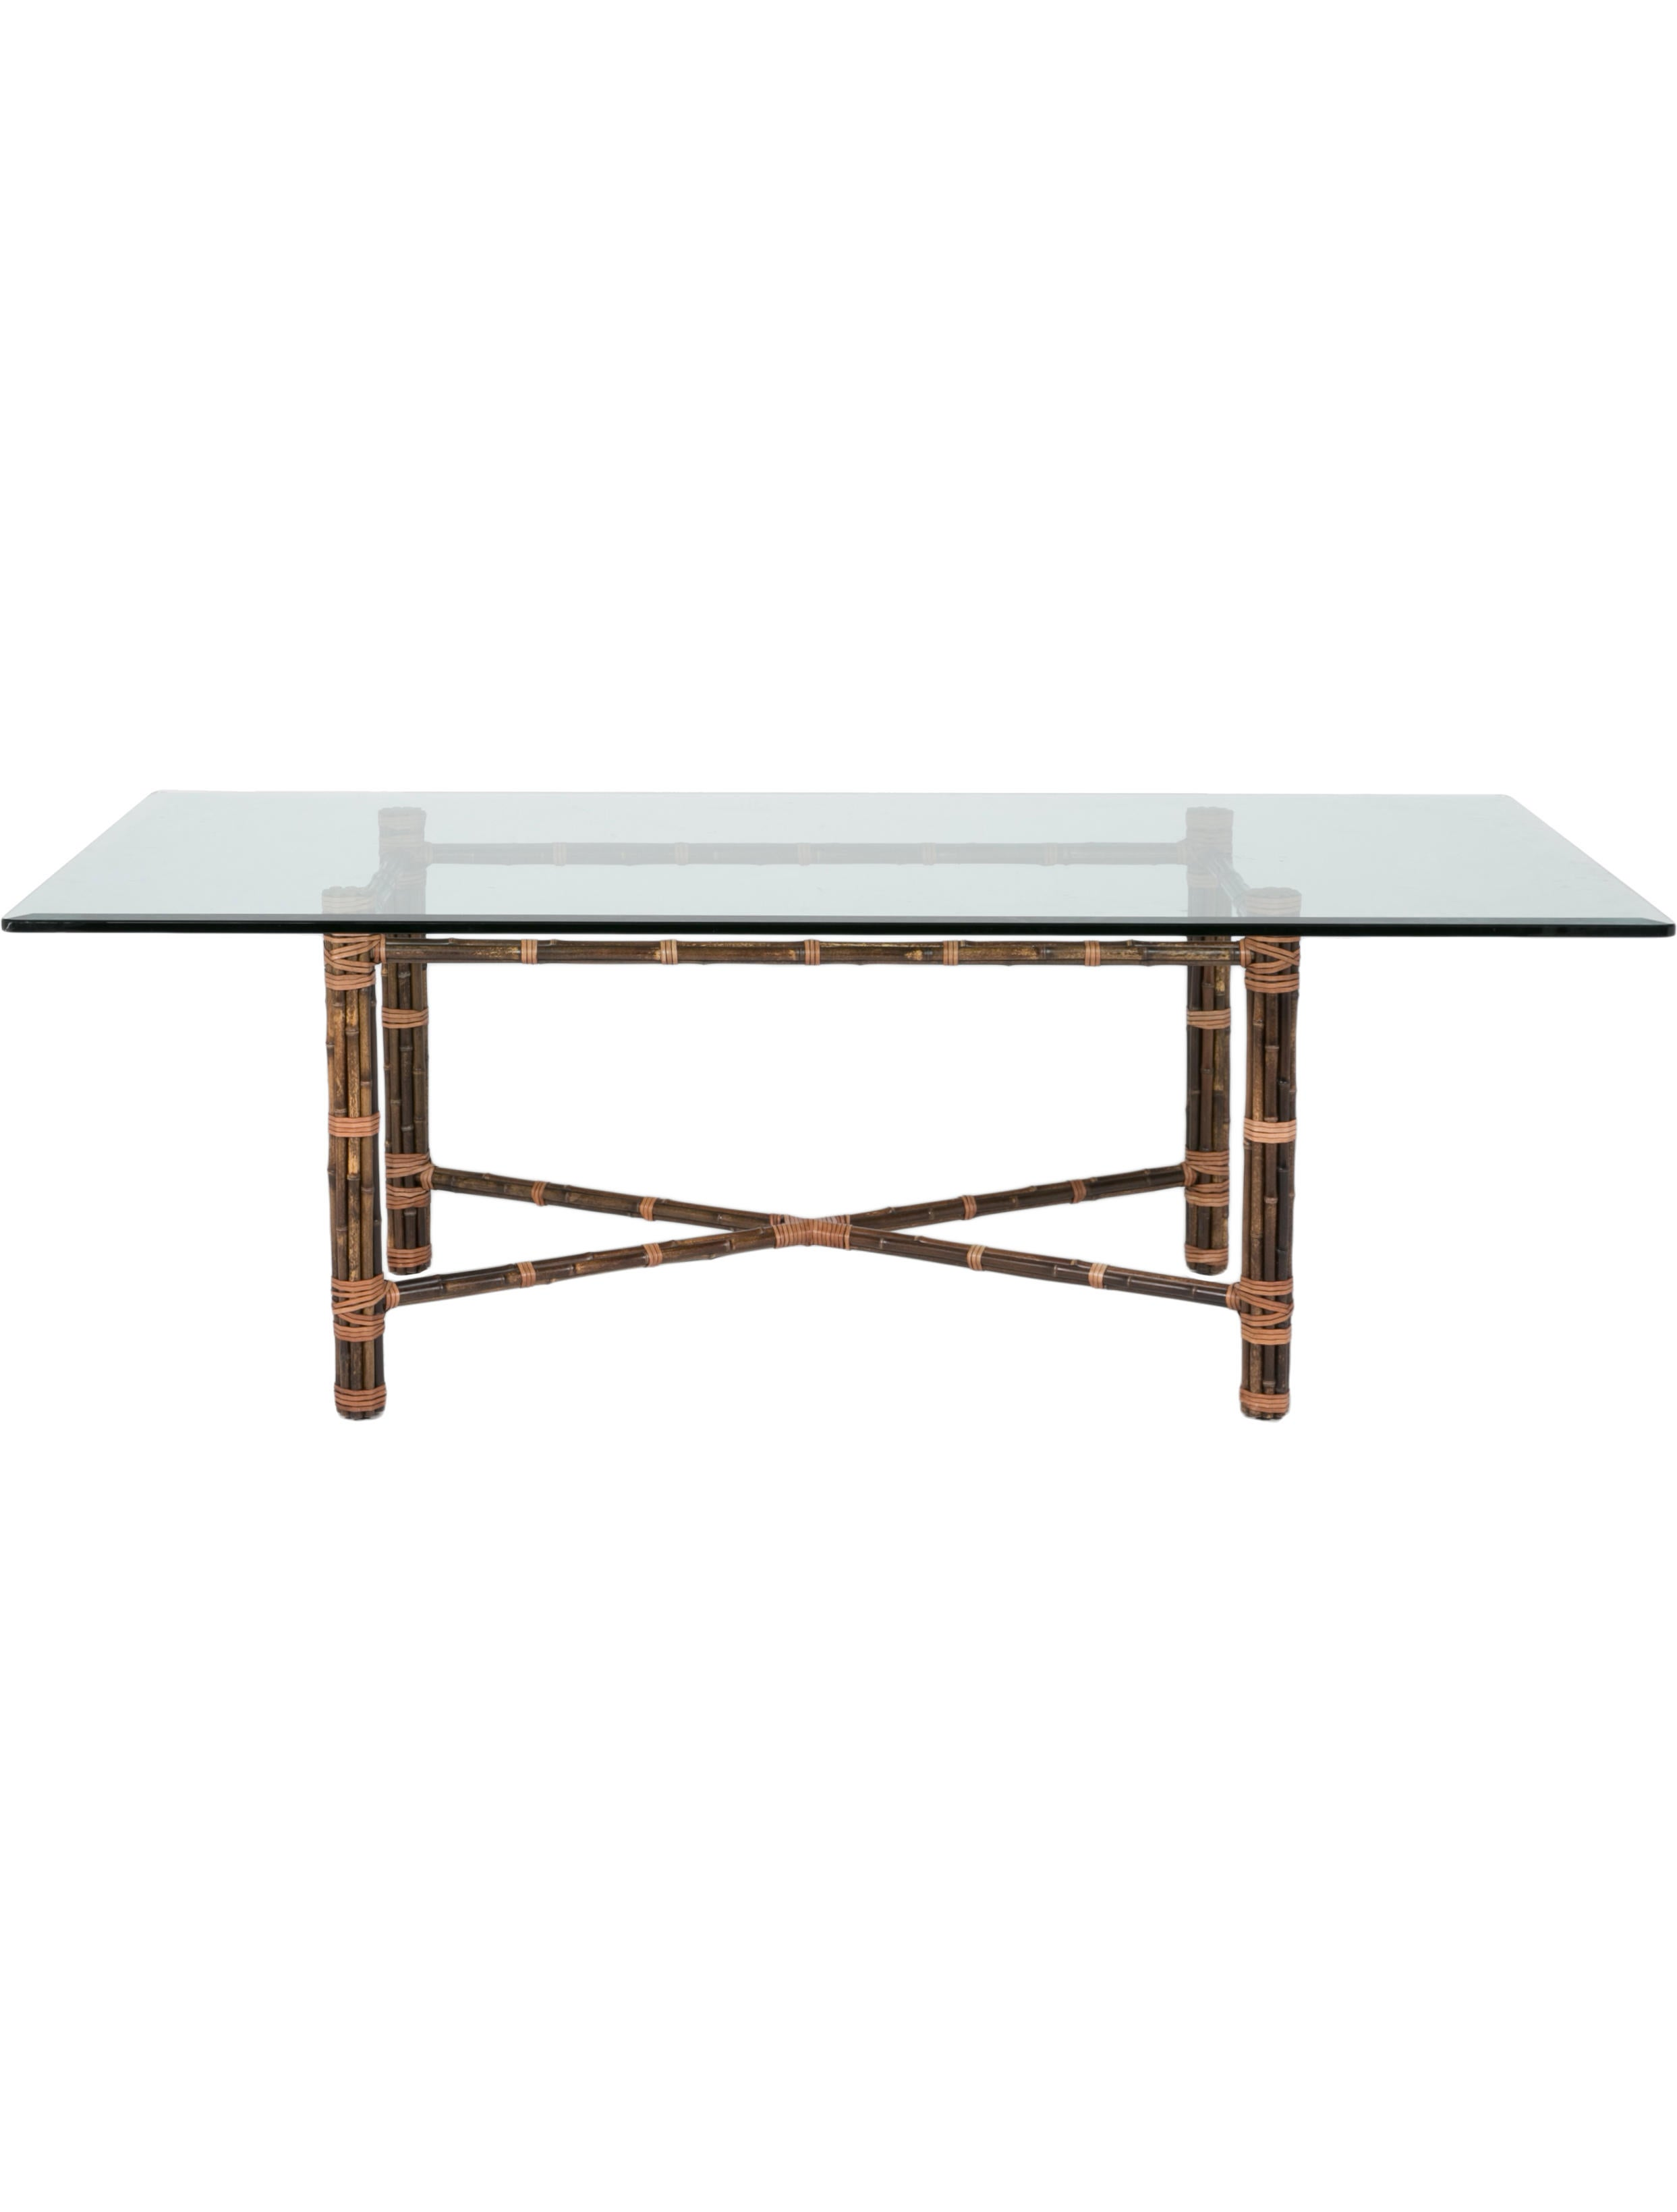 mcguire furniture company. McGuire Furniture Bamboo Dining Table. Table Mcguire Company A